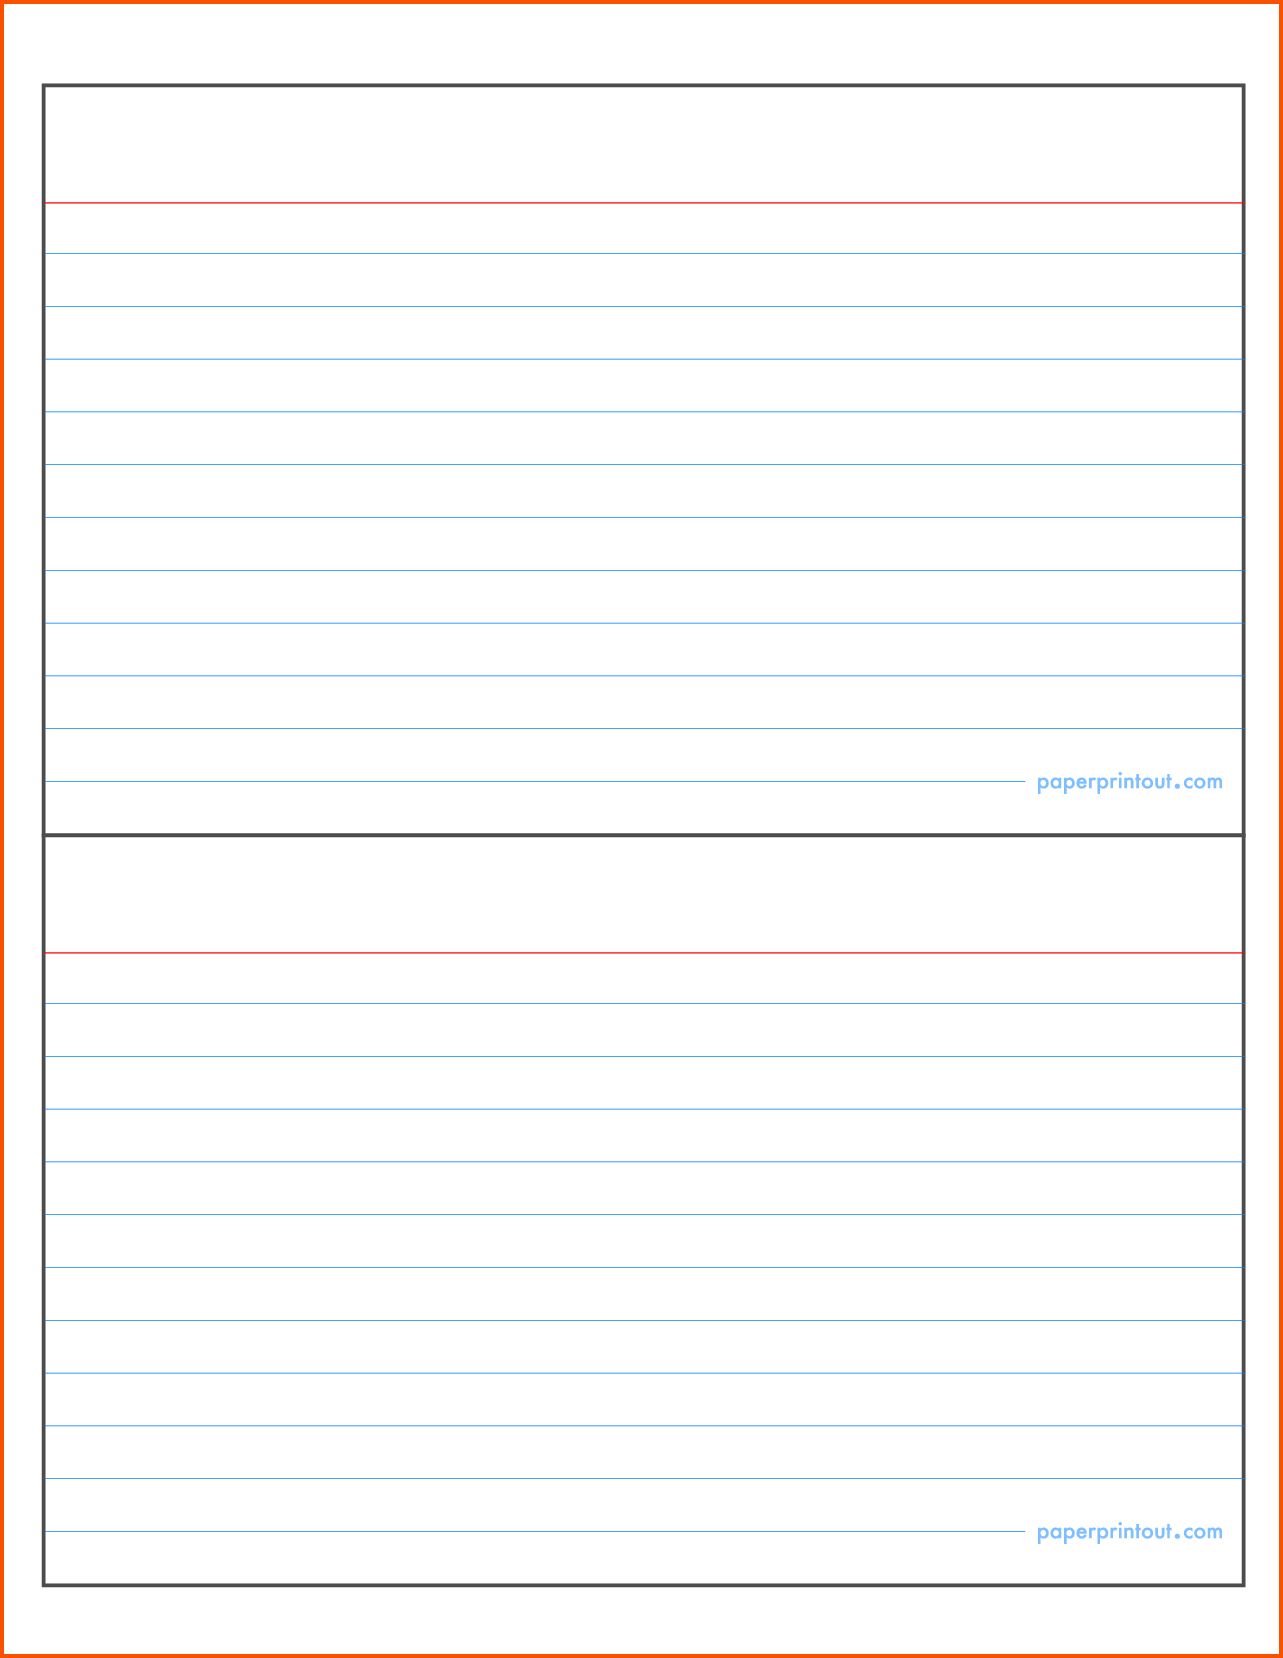 21 X 21 Index Card Template Word 21 - Cards Design Templates Within 3 By 5 Index Card Template